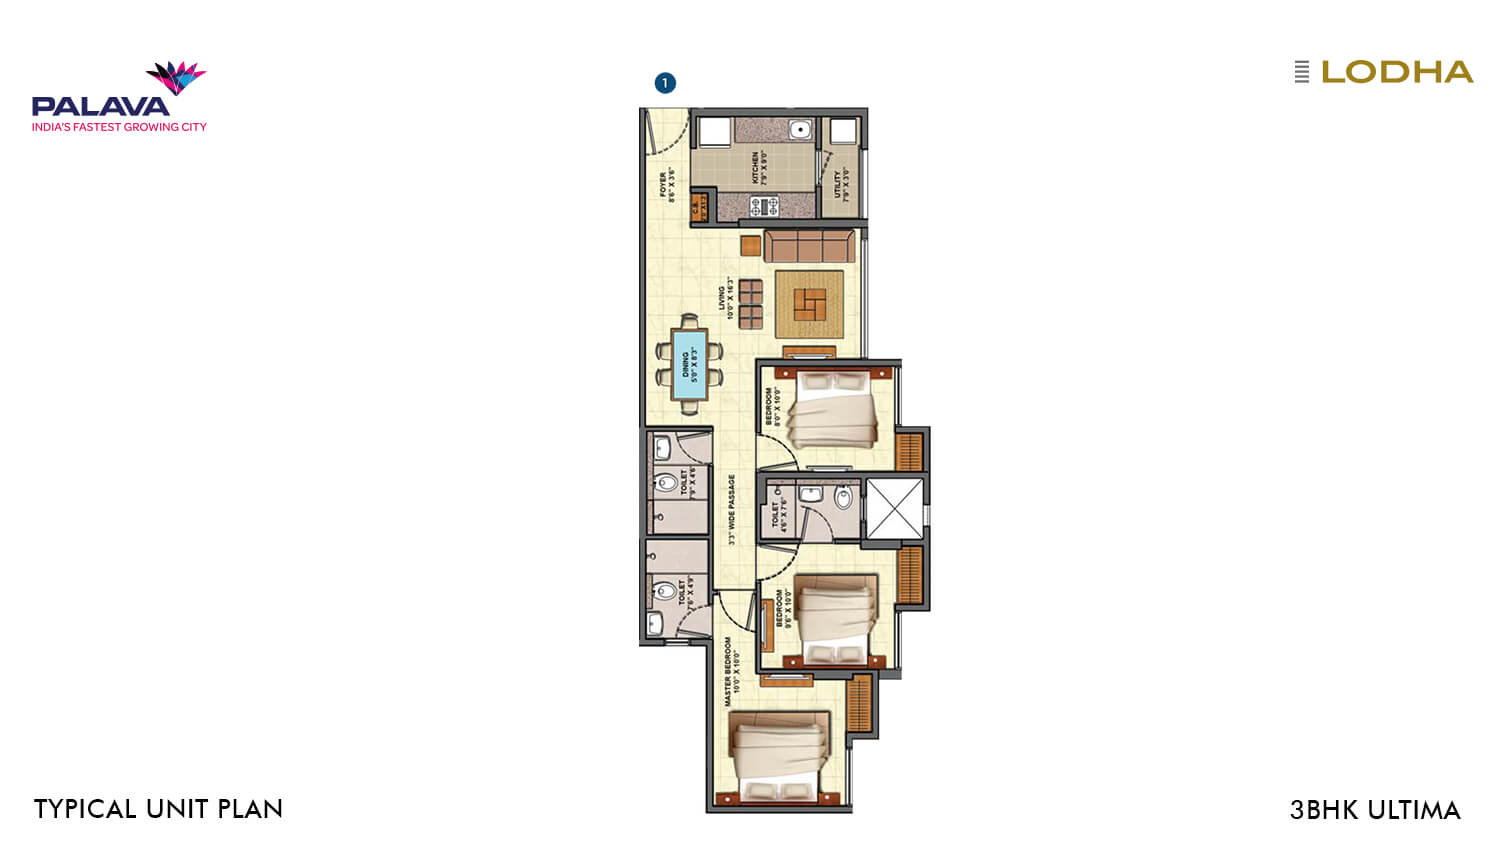 lodha palava riverside apartment 3bhk 845sqft 1